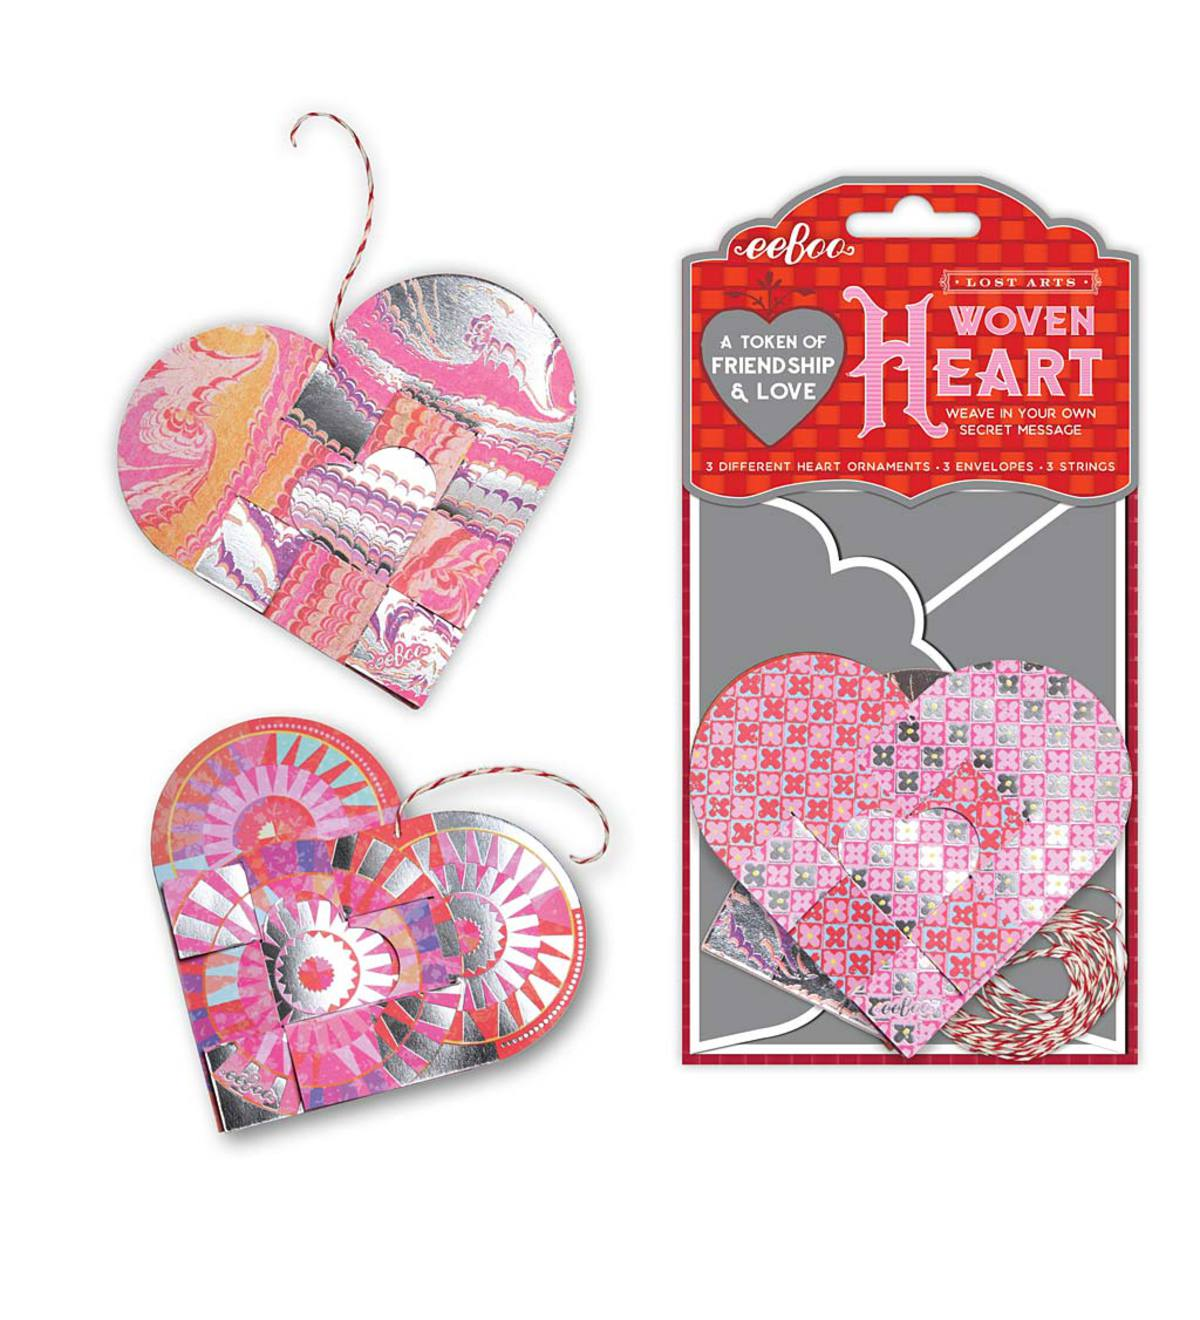 Woven Heart Tokens (set of 3)